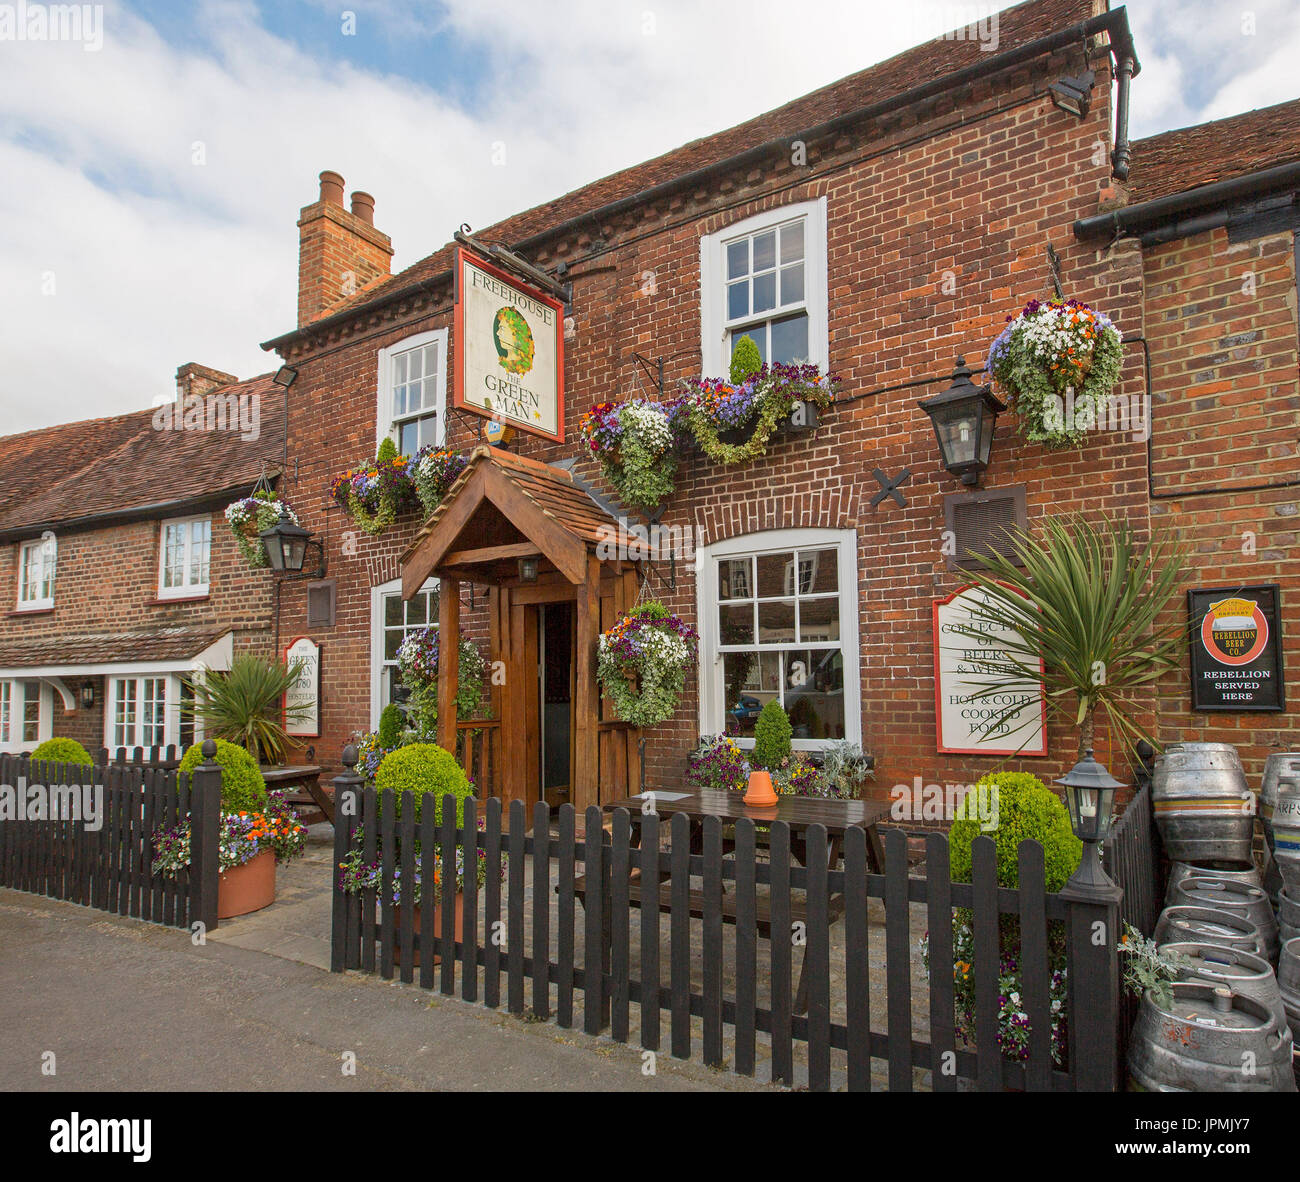 Red brick pub, The Green Man, a free house with hanging baskets of flowers, picket fence, and beer kegs in English village of Denham - Stock Image